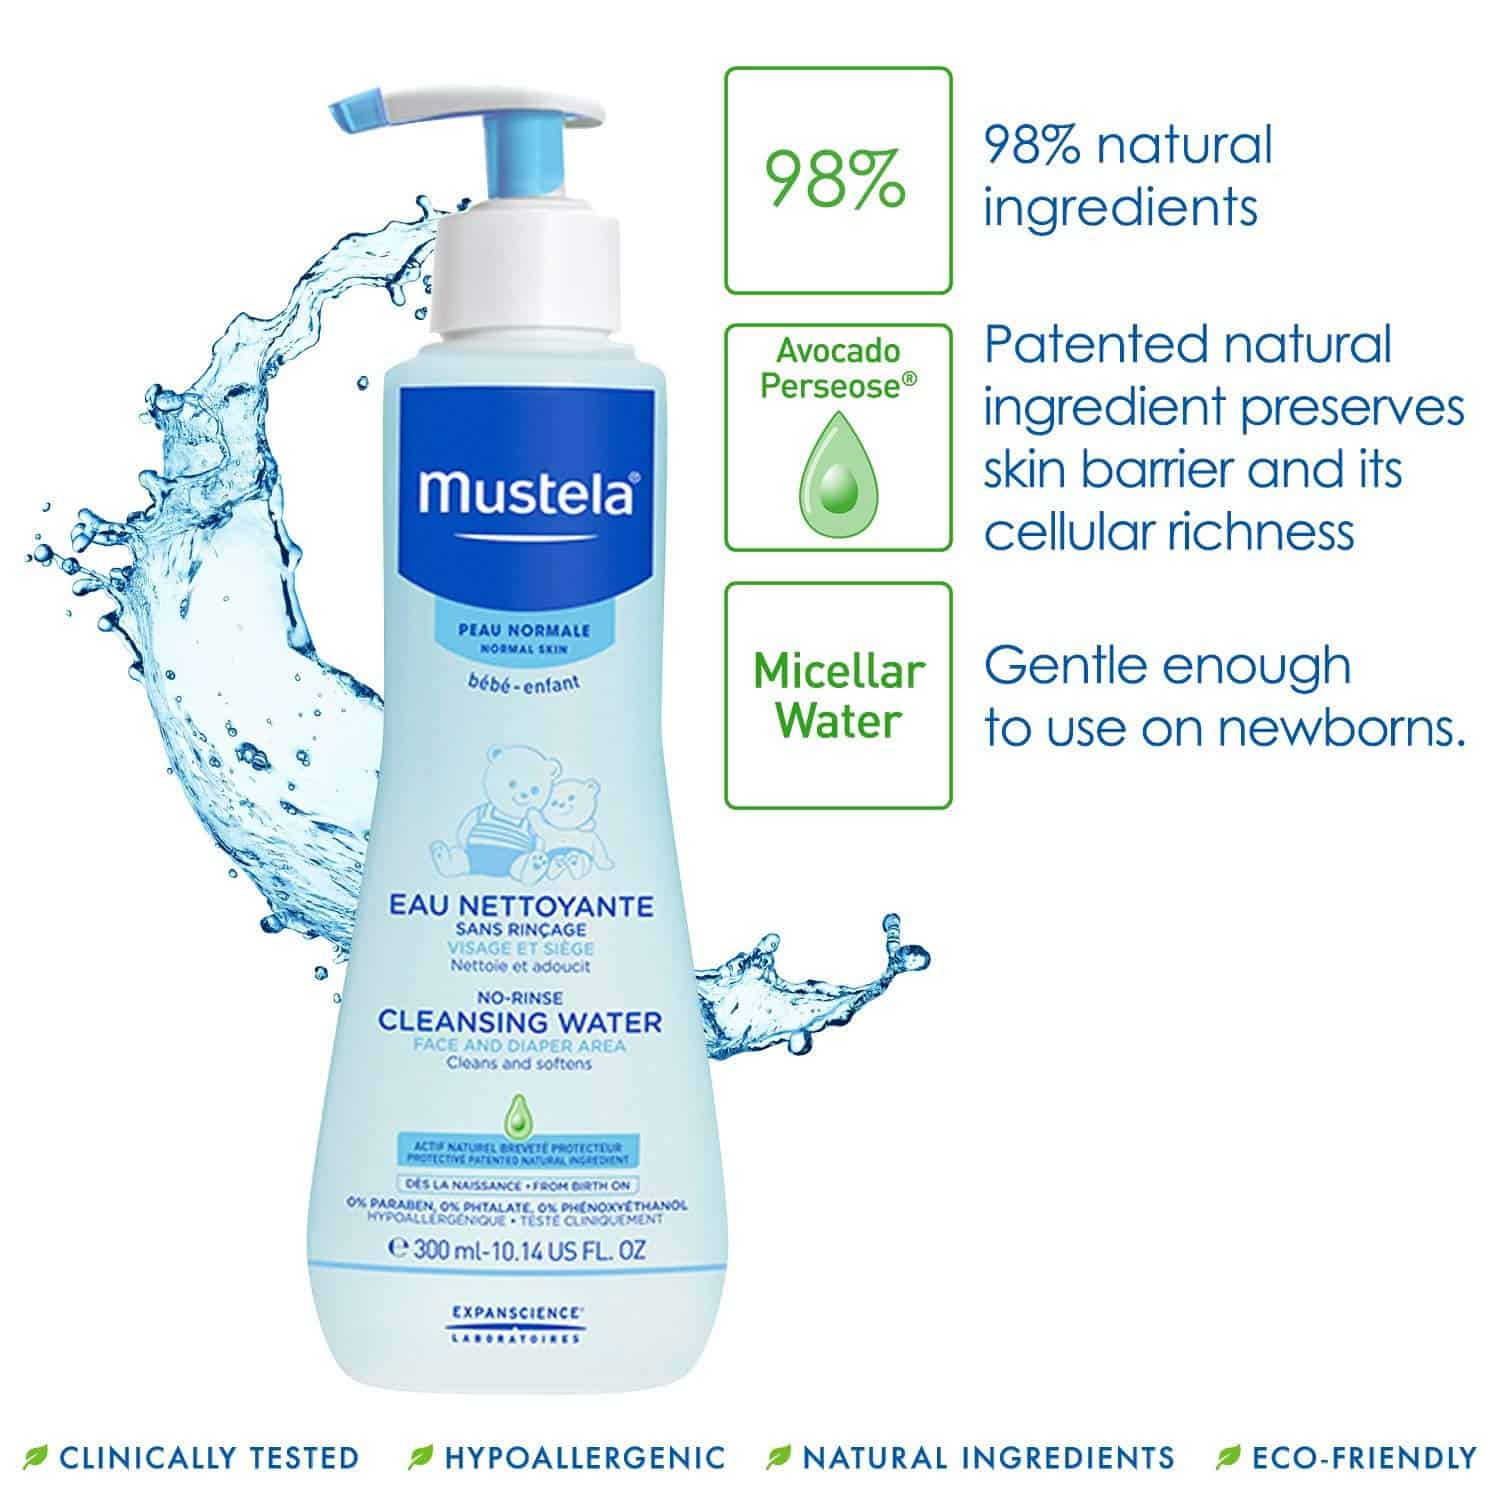 Mustela No Rinse Cleansing Water With Natural Avocado